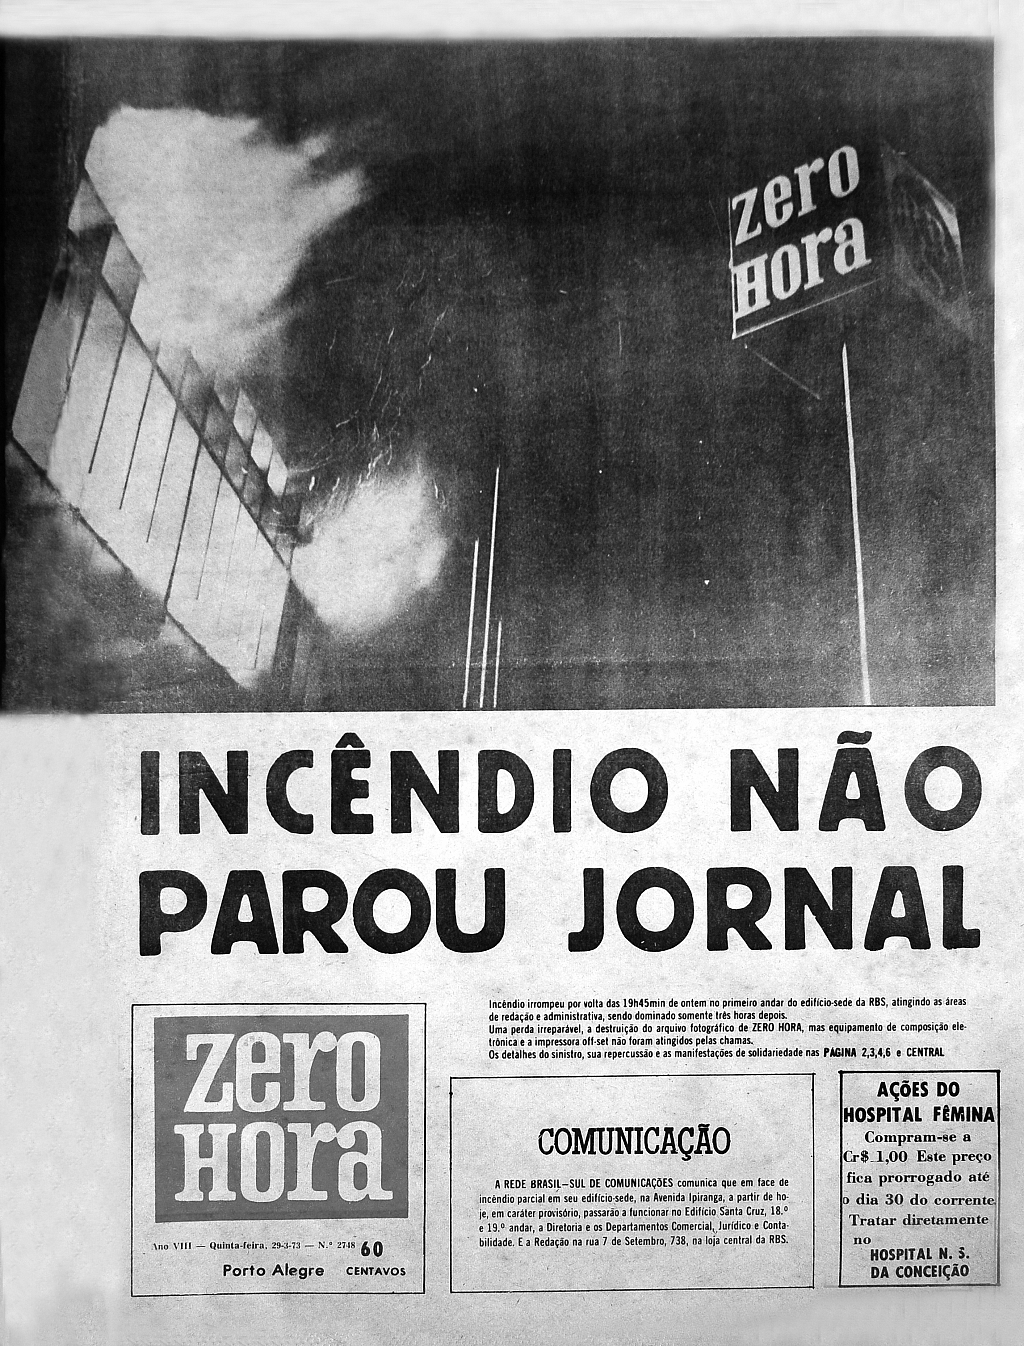 1973 - A fire destroys part of the Zero Hora newspaper building, but the next day edition is still finished and printed with the help of Jornal do Comércio (a competitor newspaper) team.